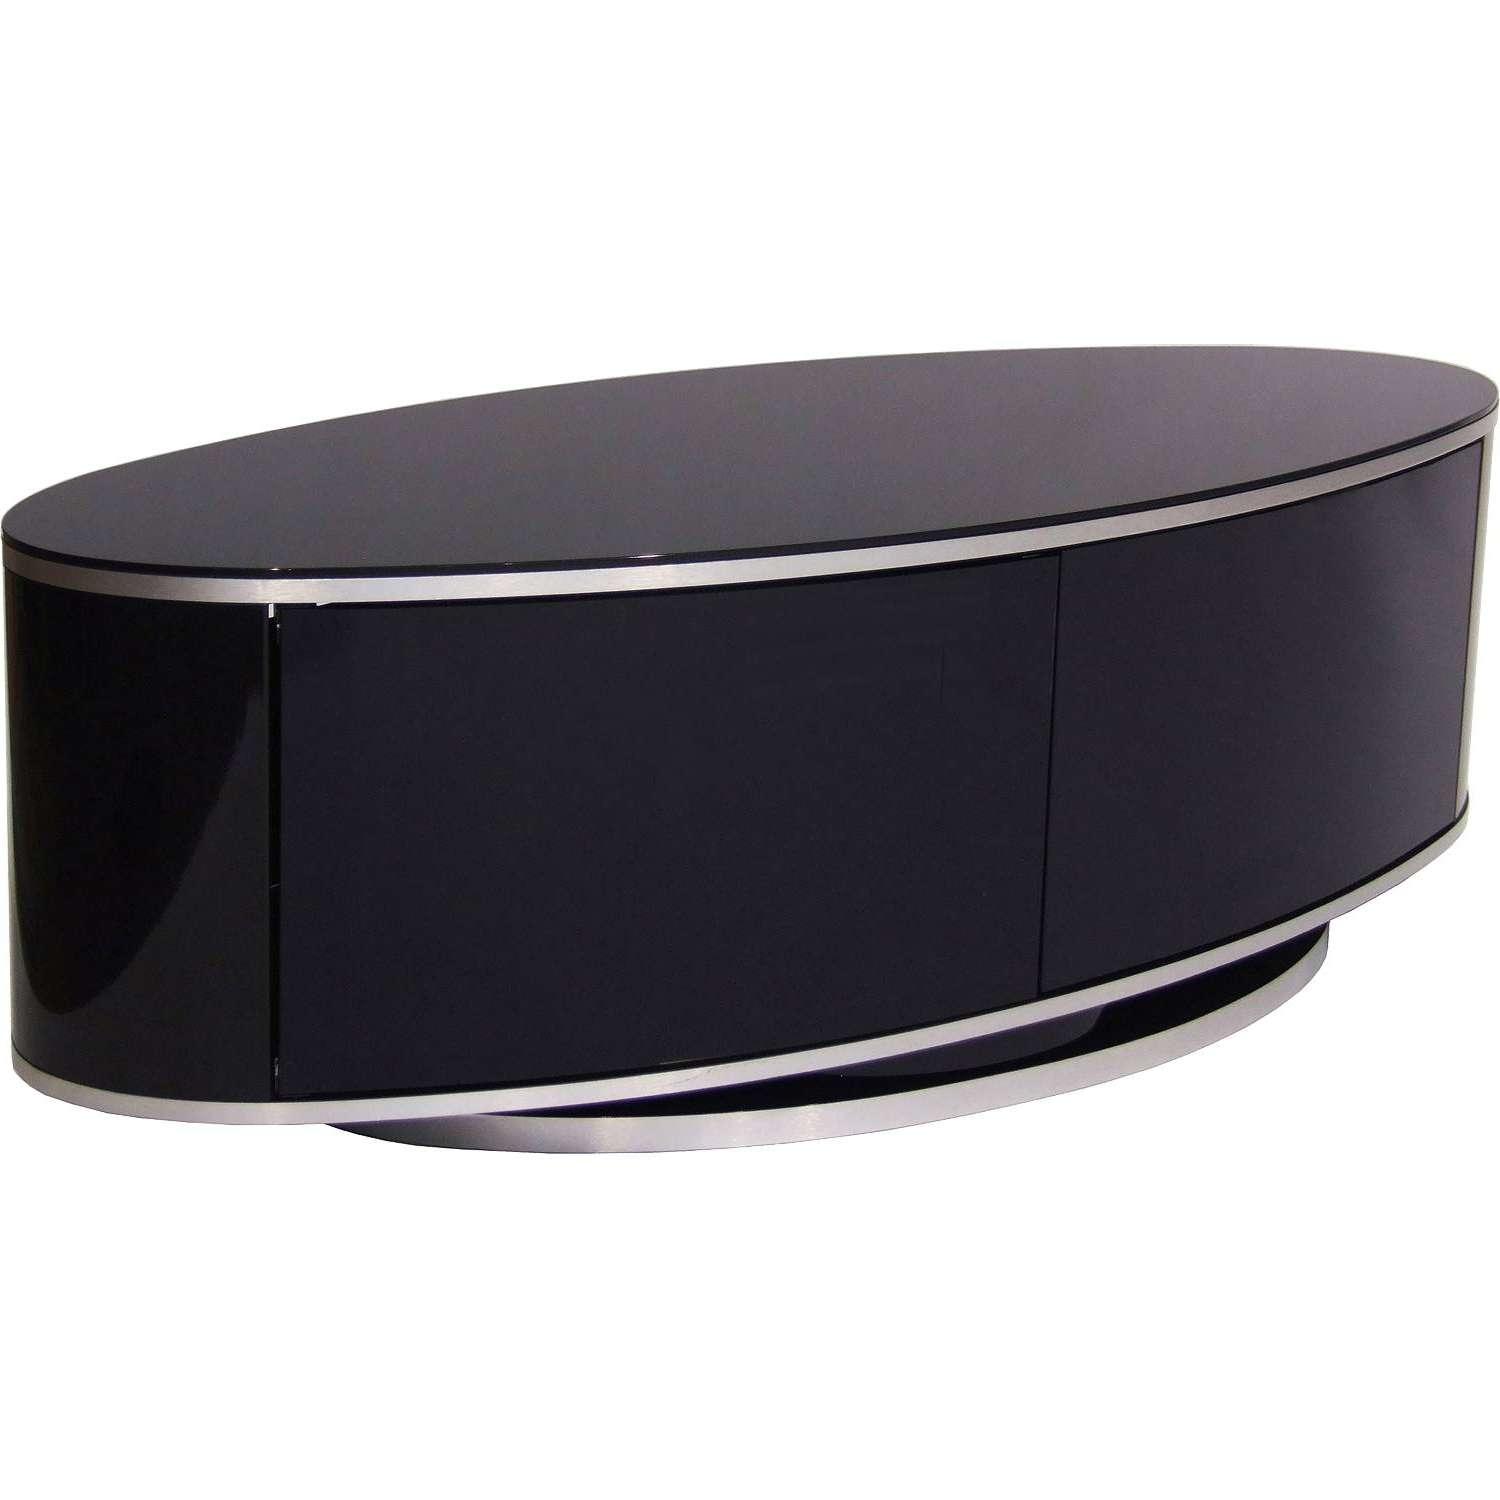 "Mda Designs Luna Av High Gloss Black Oval Tv Cabinet Up To 55"" Tvs With White Gloss Oval Tv Stands (View 5 of 15)"